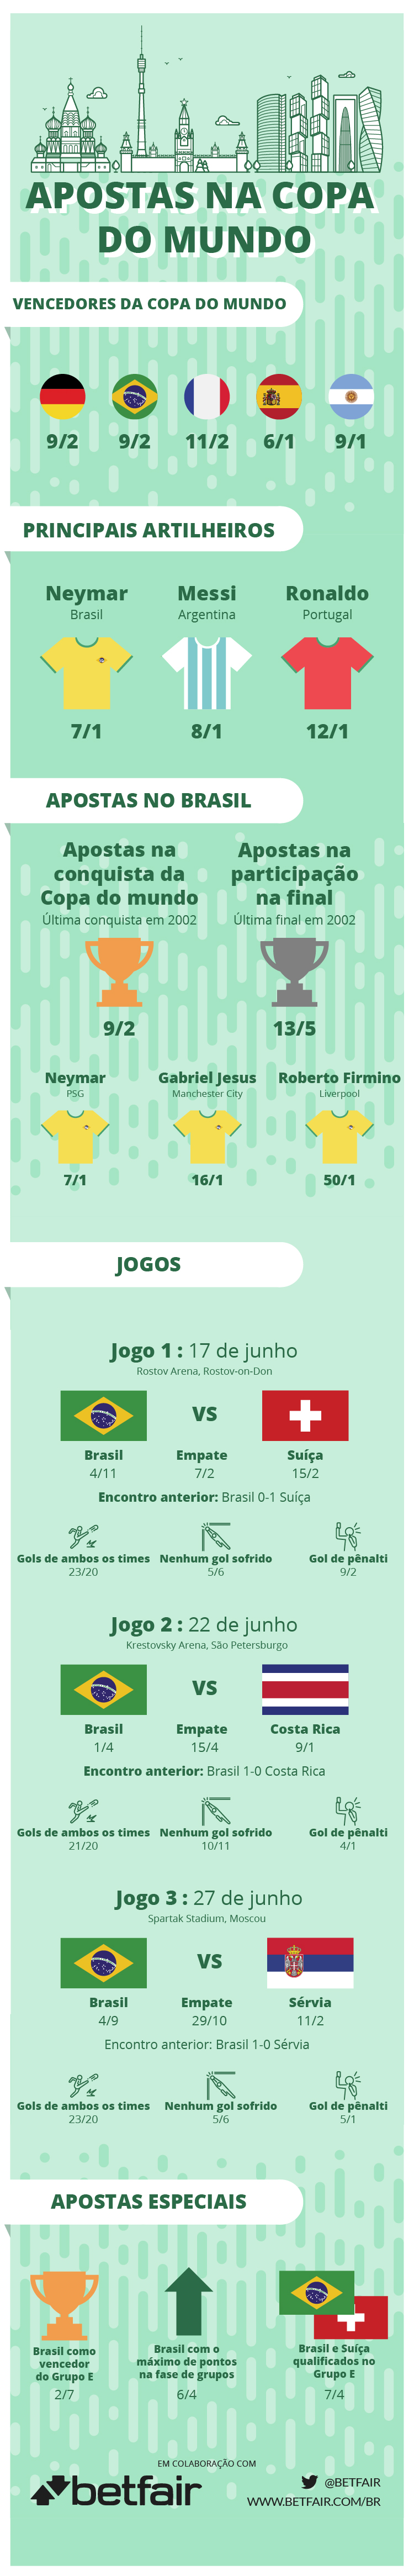 Translated World Cup Odds BRZ APOSTAS PARA A COPA DO MUNDO DA FIFA DE 2018